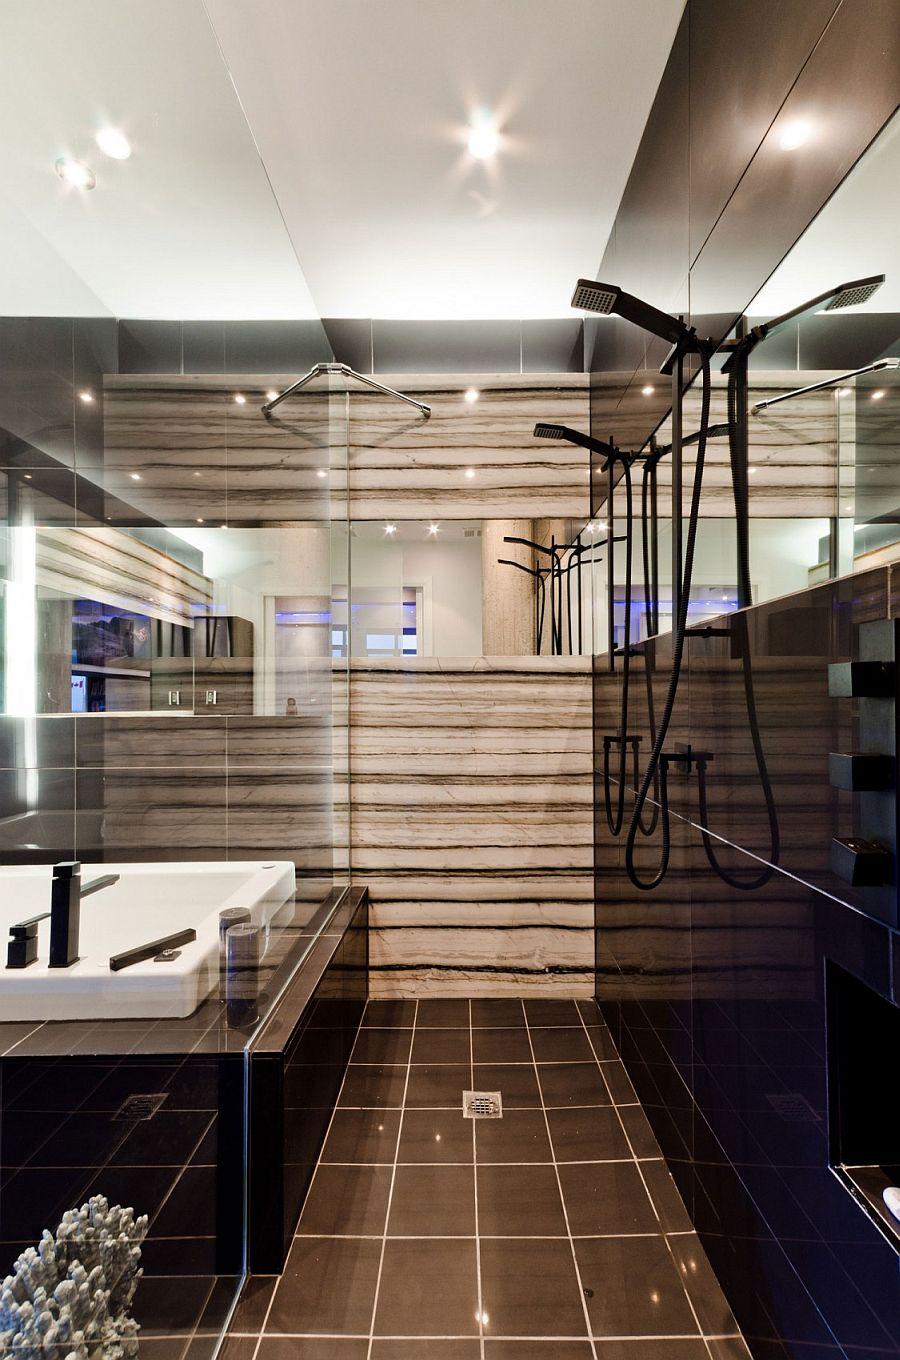 Exquisite use of glass gives the small bathroom a spacious appeal